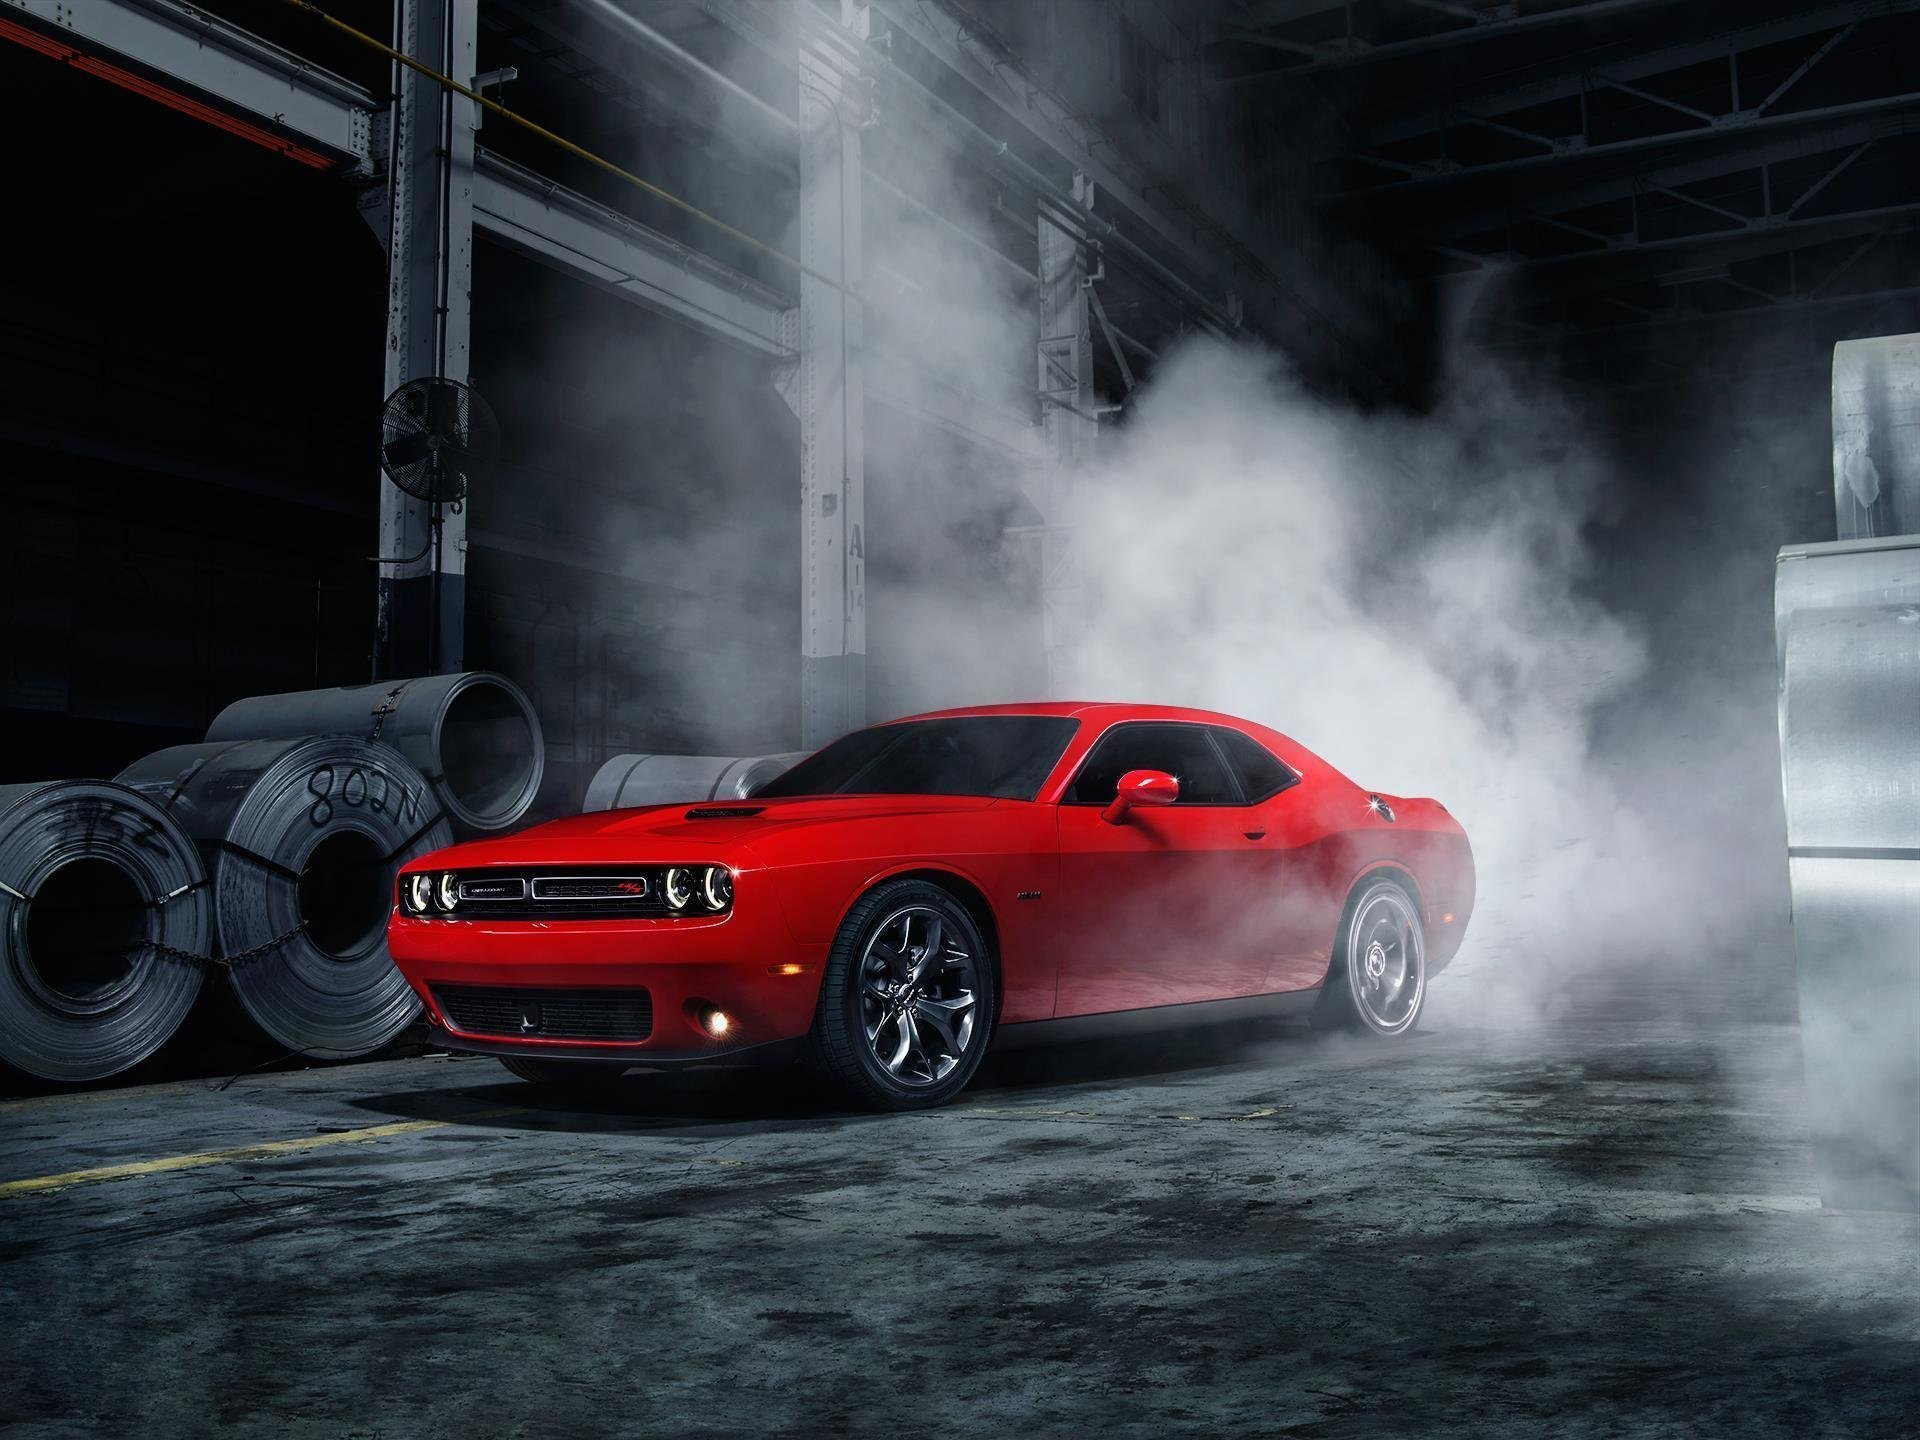 New Dodge Challenger American Muscle Car Smoke Red Front Ligth On This Month